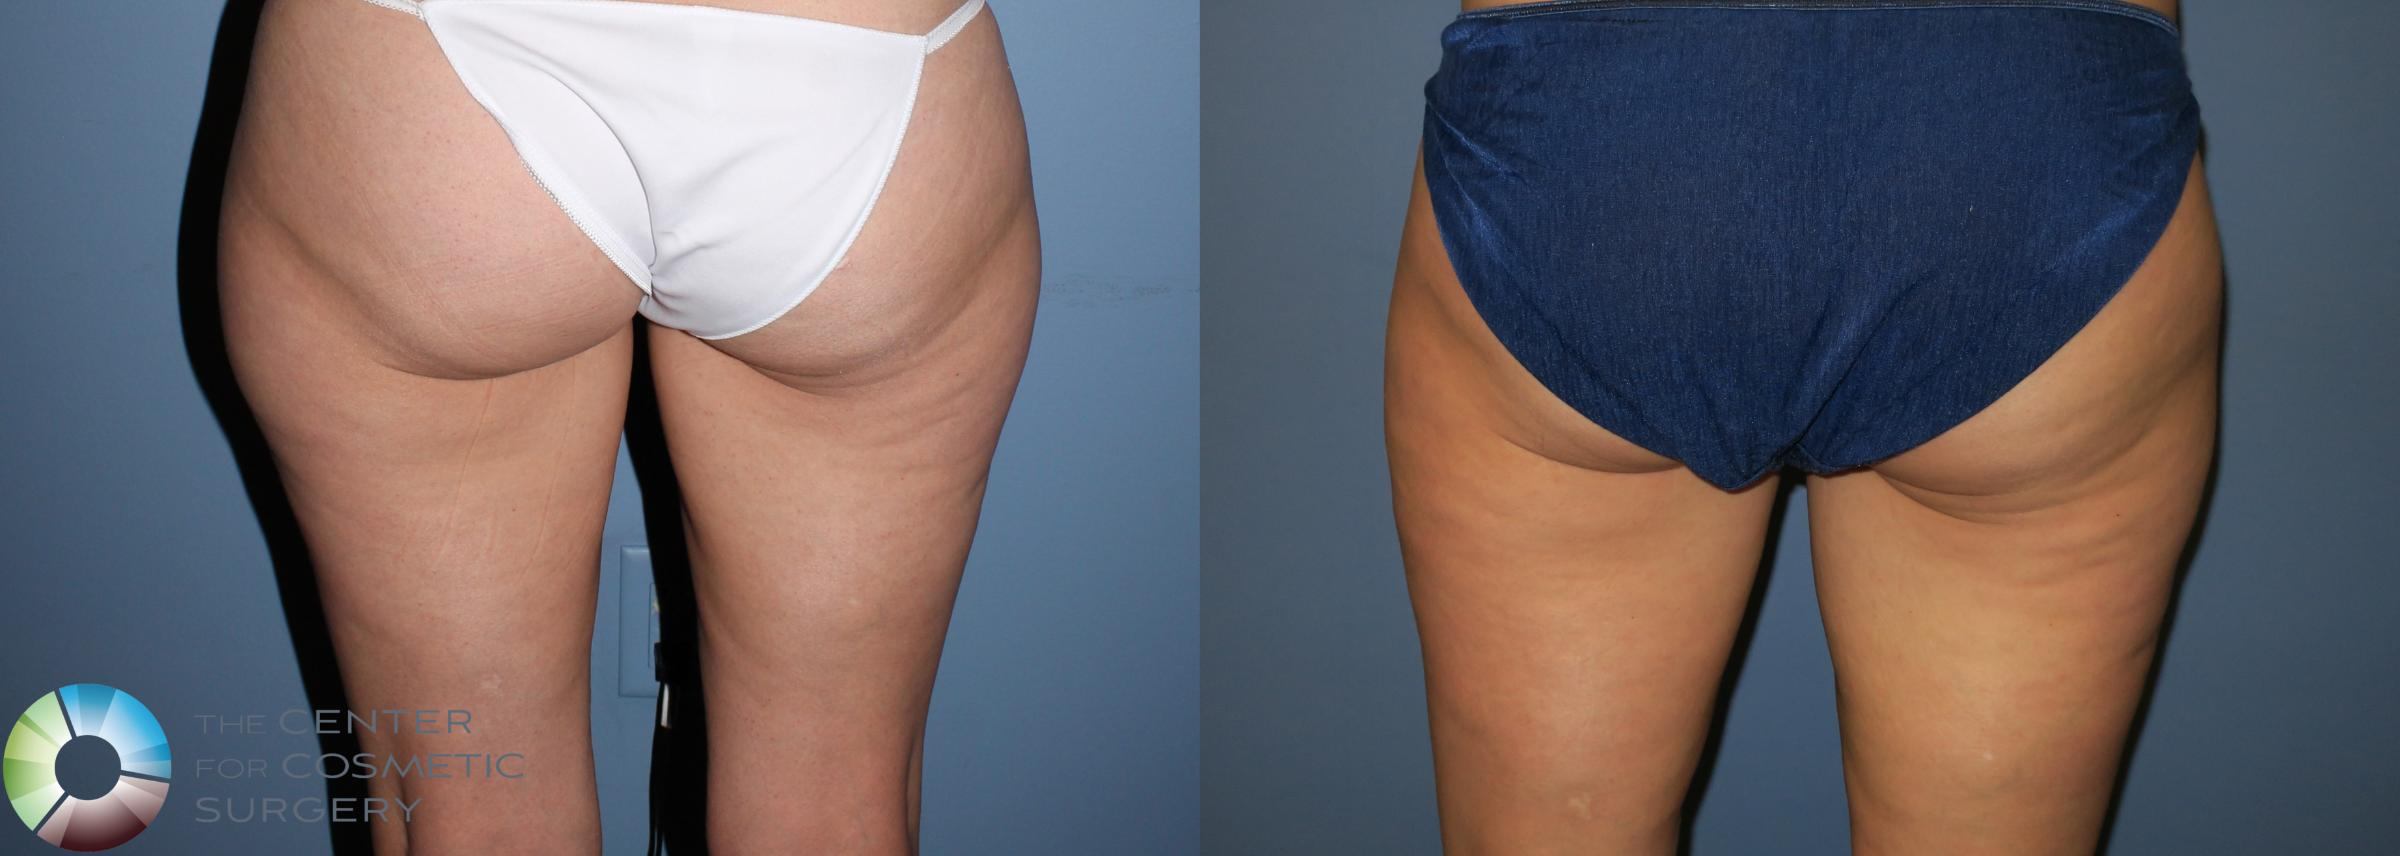 Liposuction Case 819 Before & After View #3 | Golden, CO | The Center for Cosmetic Surgery